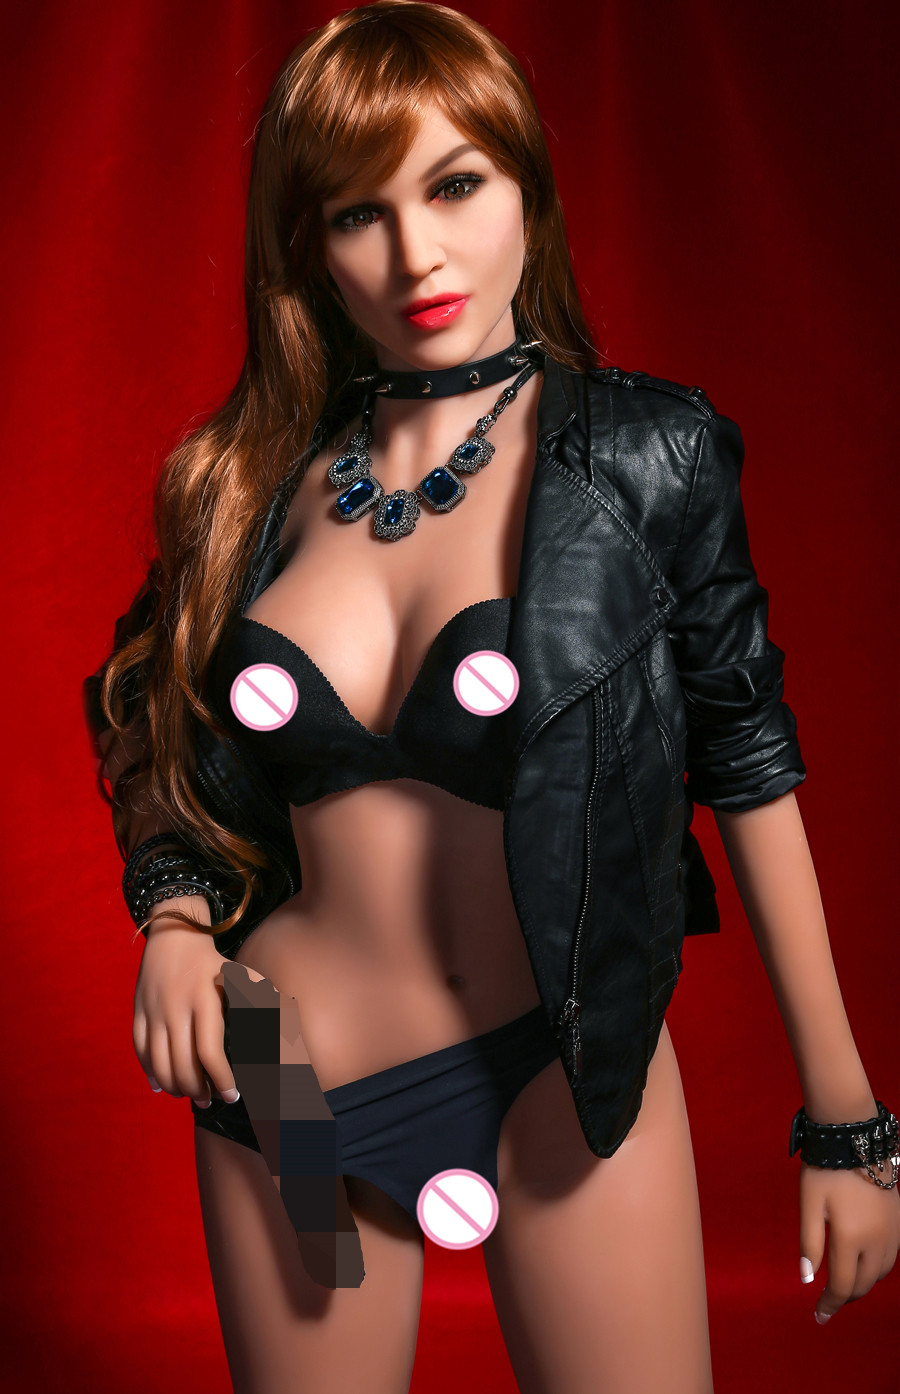 Image 5 - Yannova 68# 165CM Large breasts real silicone sex doll man realistic vaginal oral ass TPE and metal skeleton sexy beauty dollSex Dolls   -